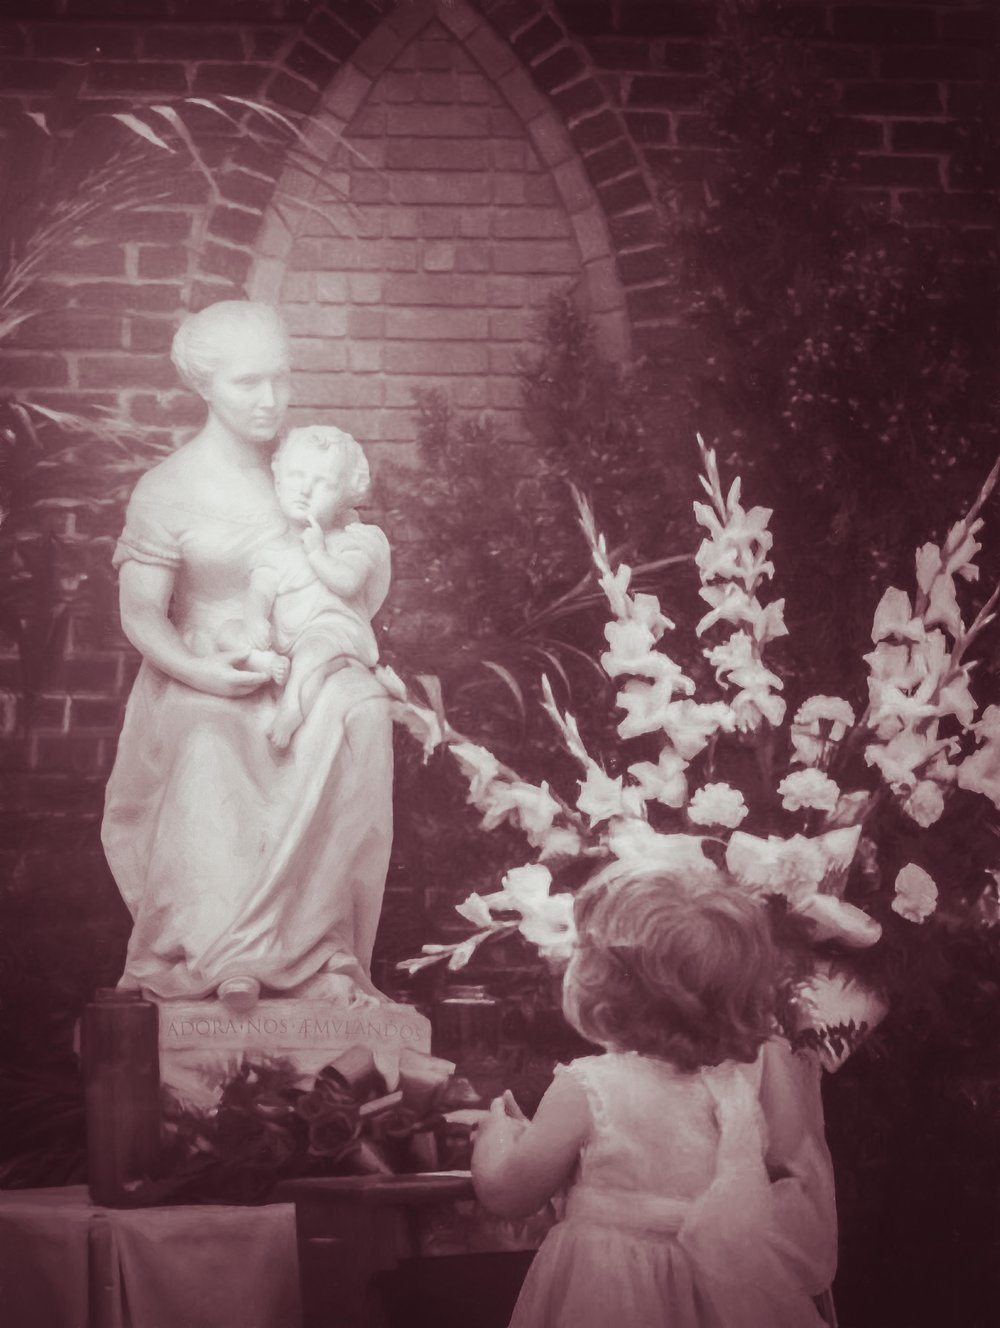 Cult of the White Madonna